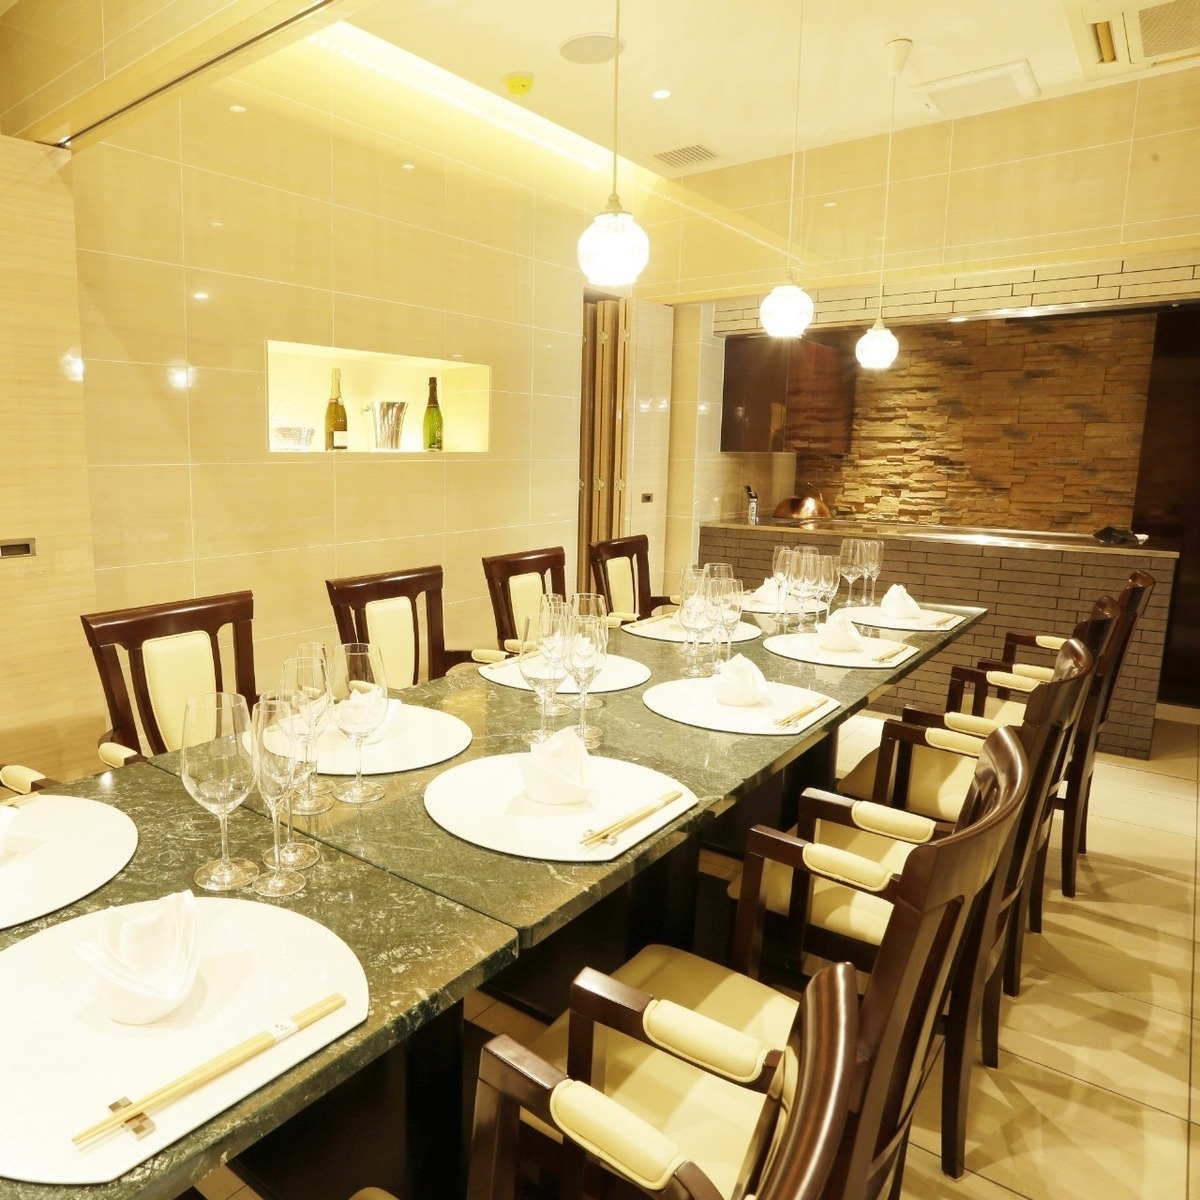 Private room 【Ran】 (5 to 12 people) Our chef will cook in front of you.Please do not hesitate to bring out a splendid flame that stands up when you bake meat.※ It may not be possible to bake in front of you depending on the situation of the reservation.Please confirm at the time of reservation.